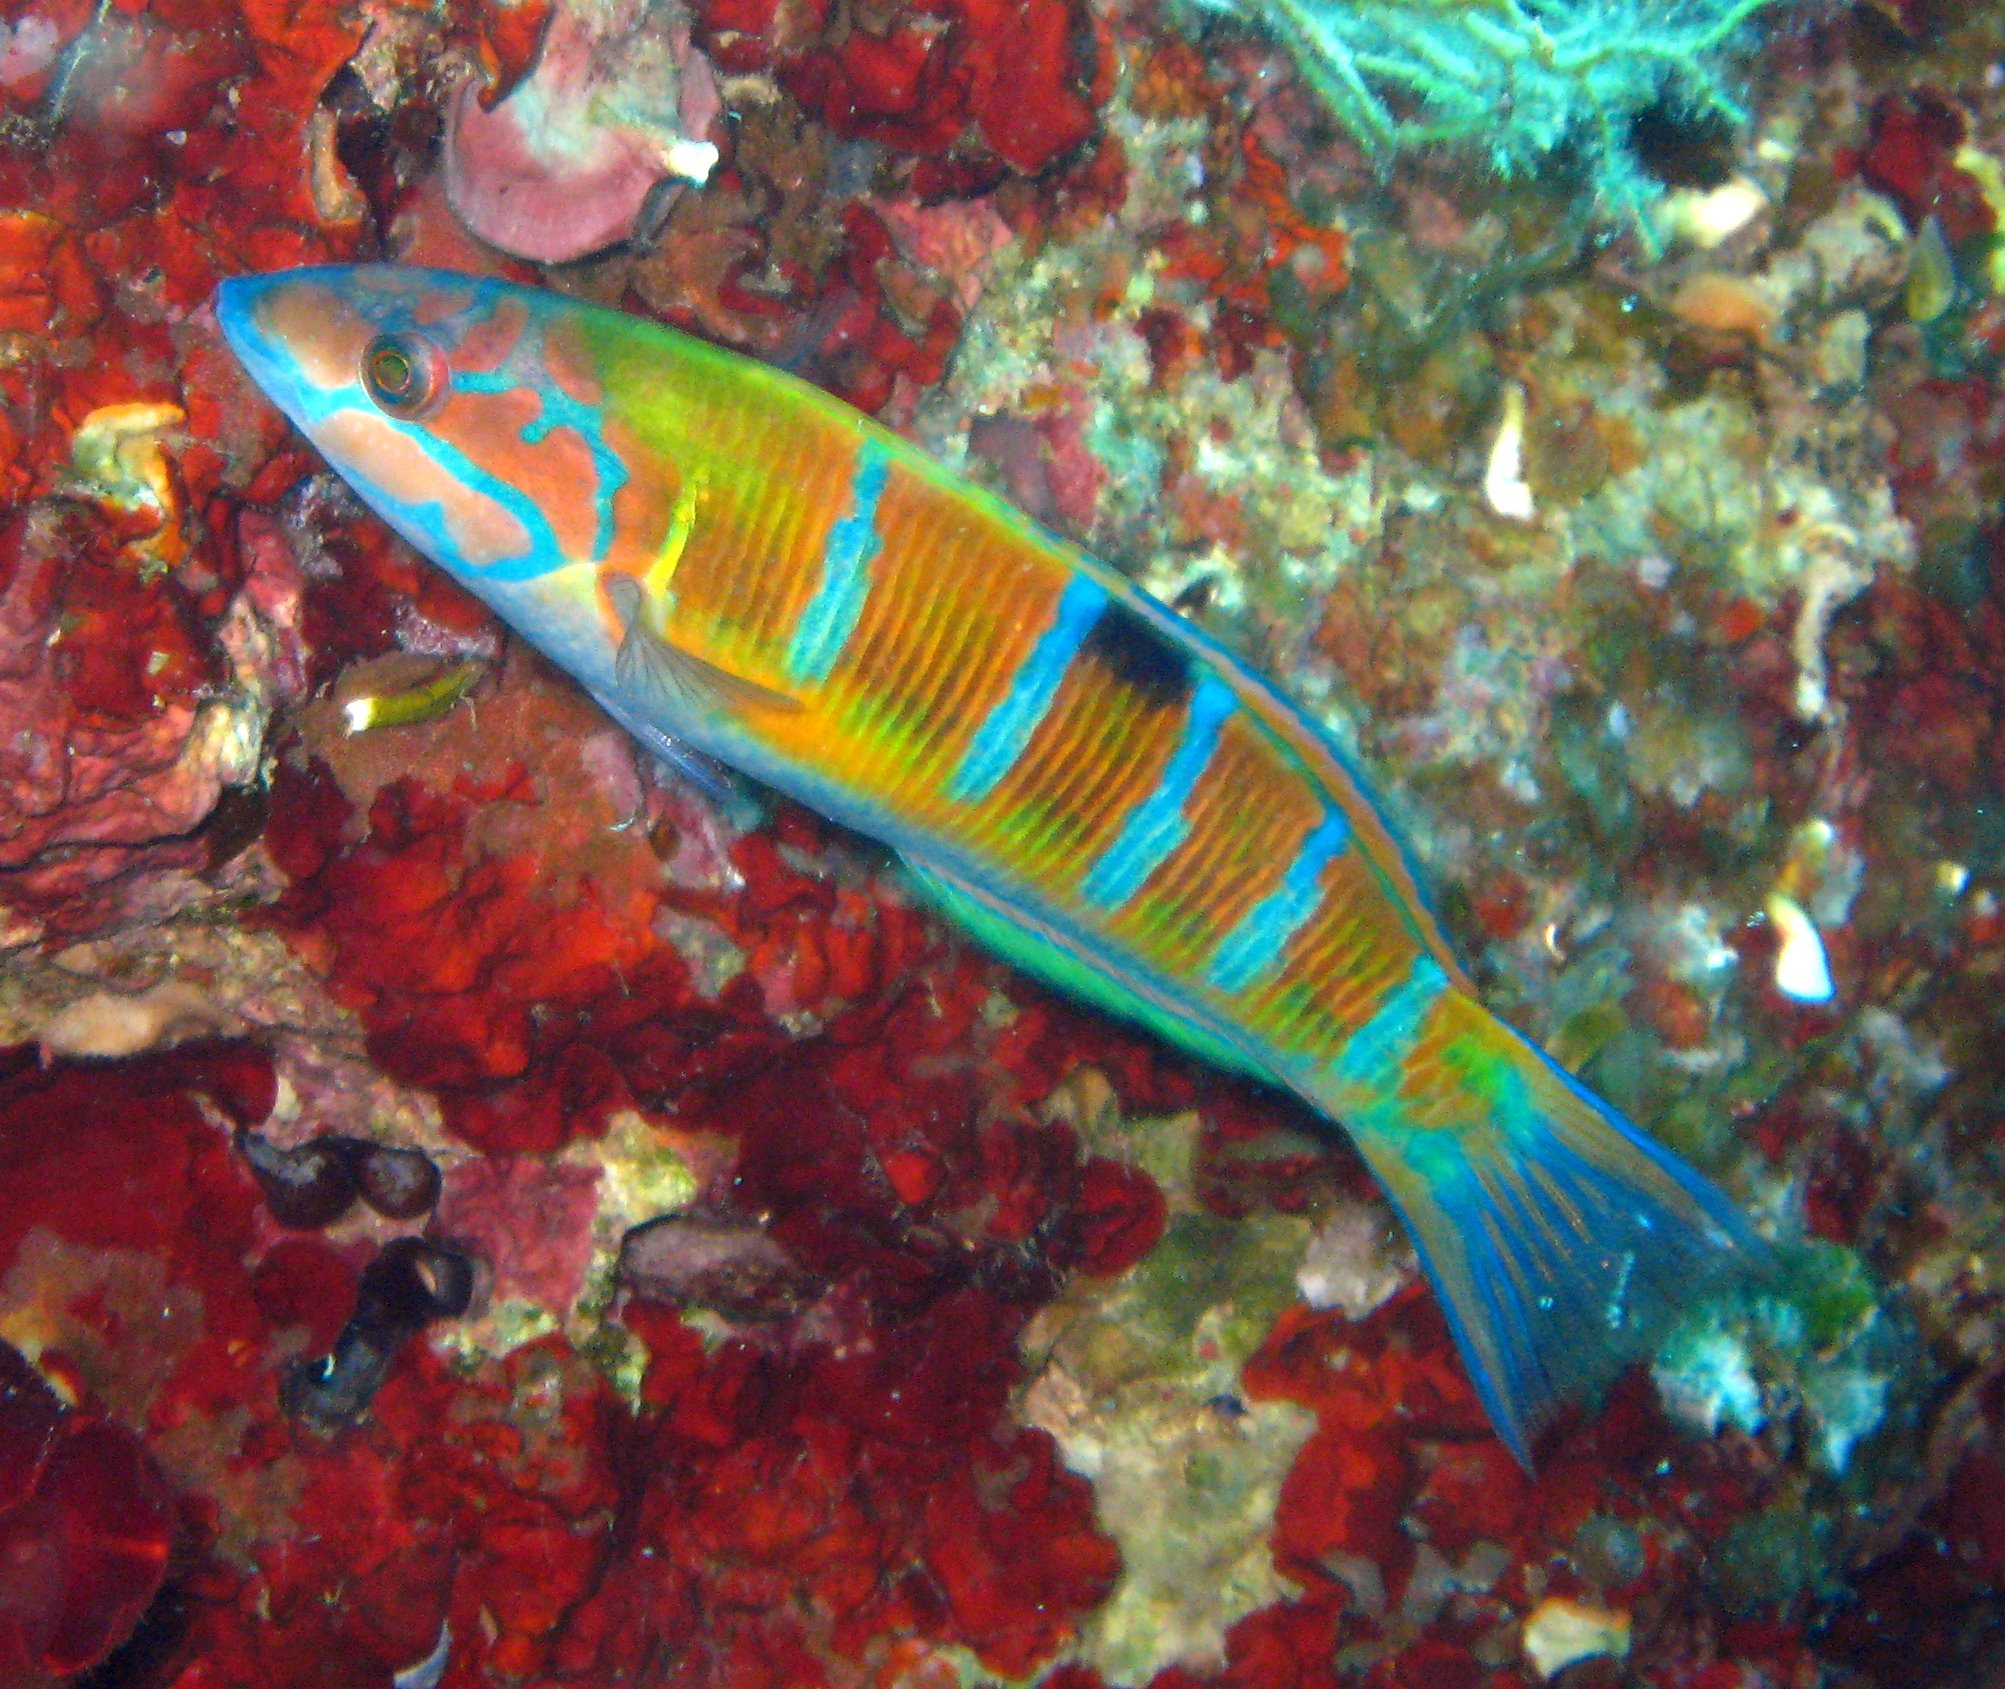 Knez (Coris julis) Female_Thalassoma_pavo